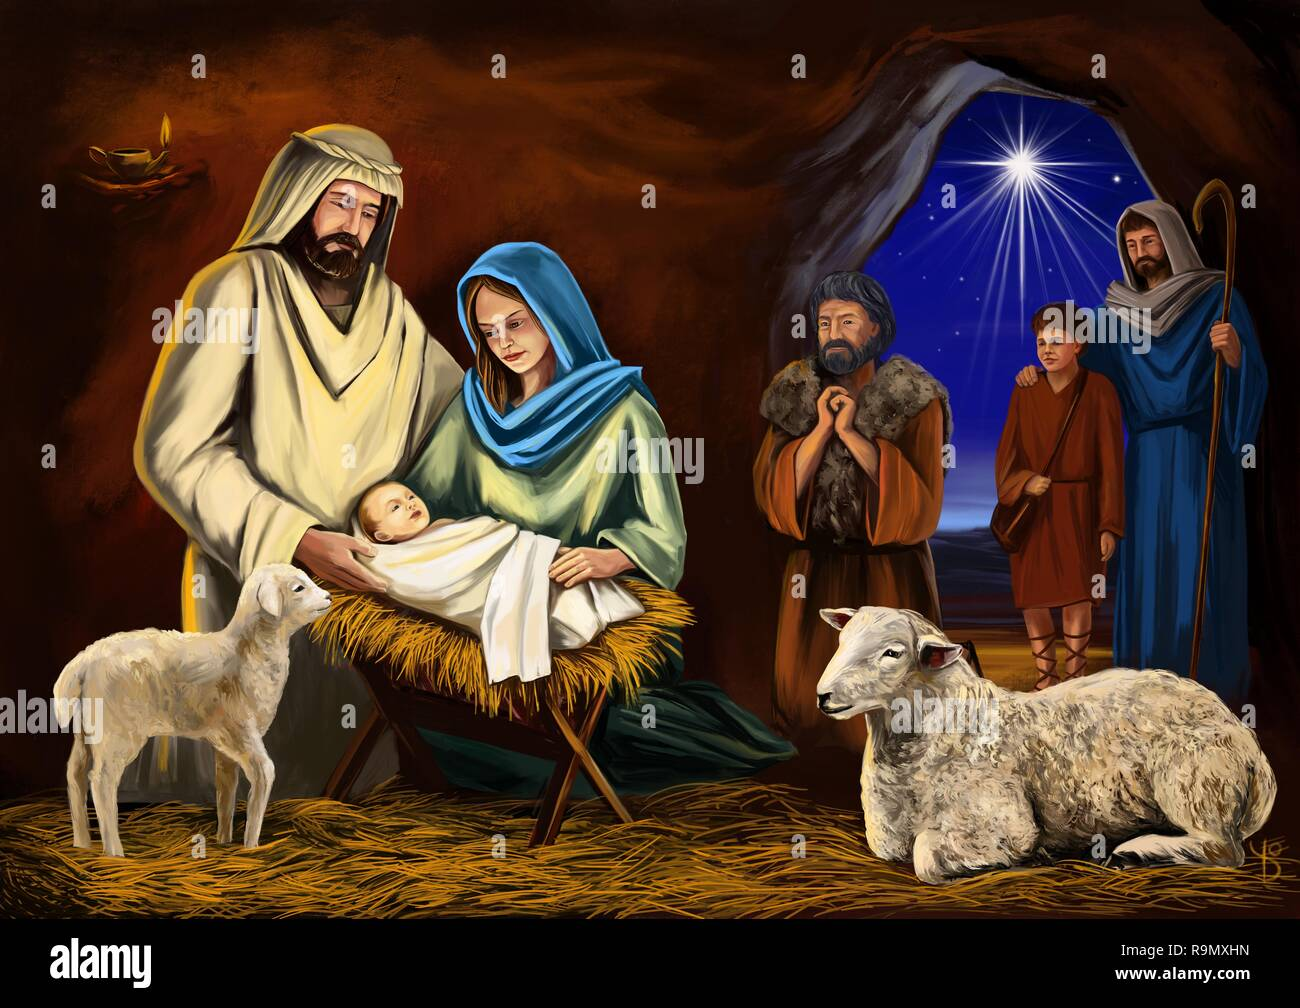 Christmas Story Christmas Night Mary Joseph And The Baby Jesus Son Of God Symbol Of Christianity Art Illustration Hand Drawn Painted Stock Photo Alamy